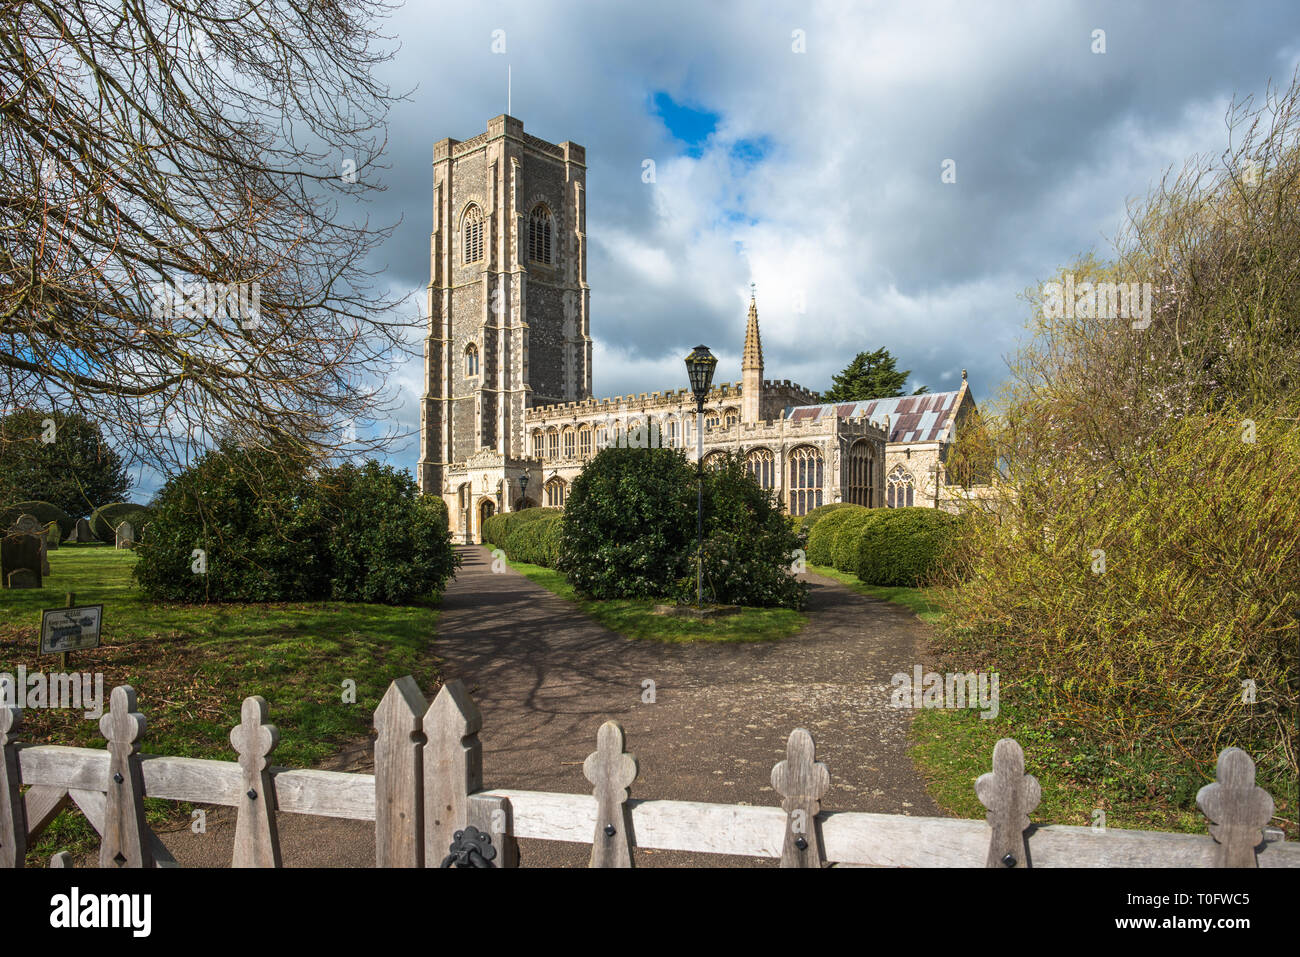 St Peter and St Paul's Parish Church, Lavenham village, Suffolk, England, UK. - Stock Image